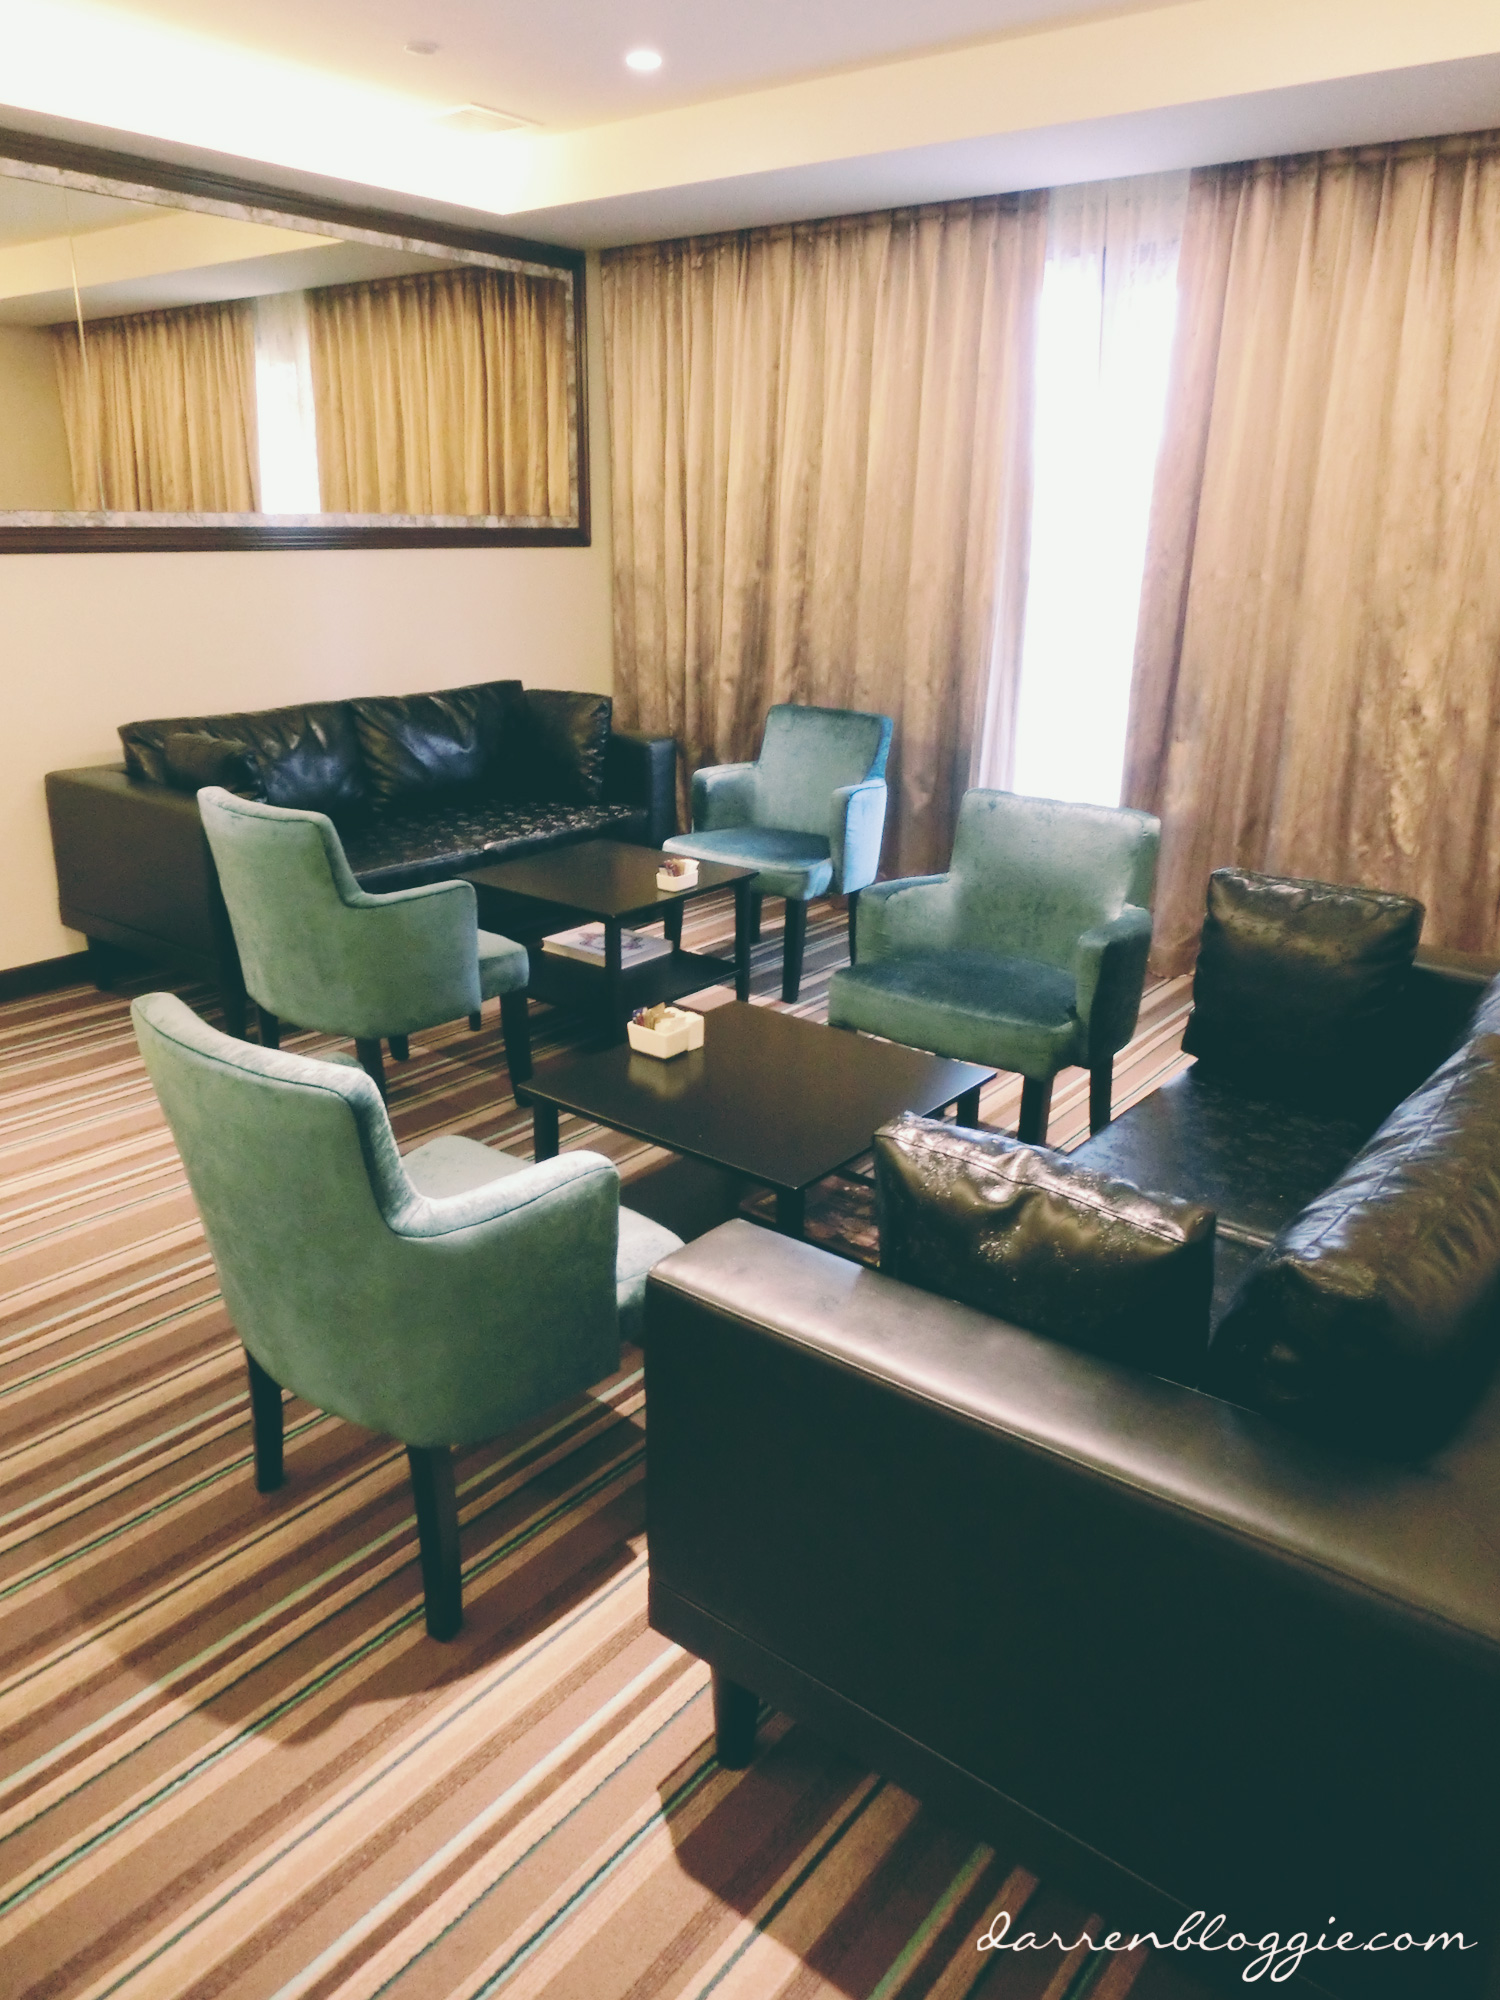 Village Hotel Katong Staycation